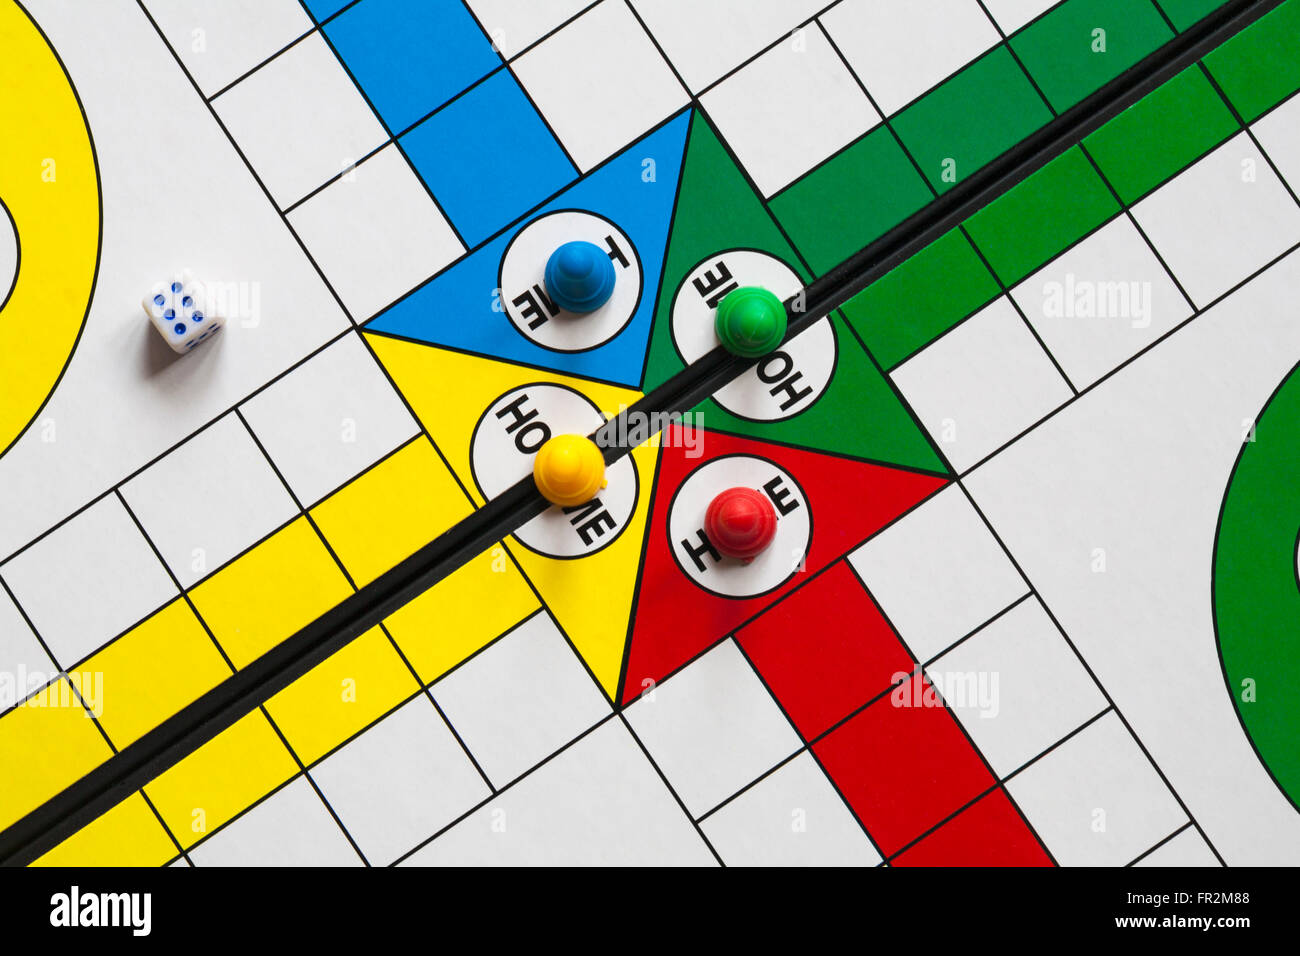 Childrens Board Game Stock Photos & Childrens Board Game Stock